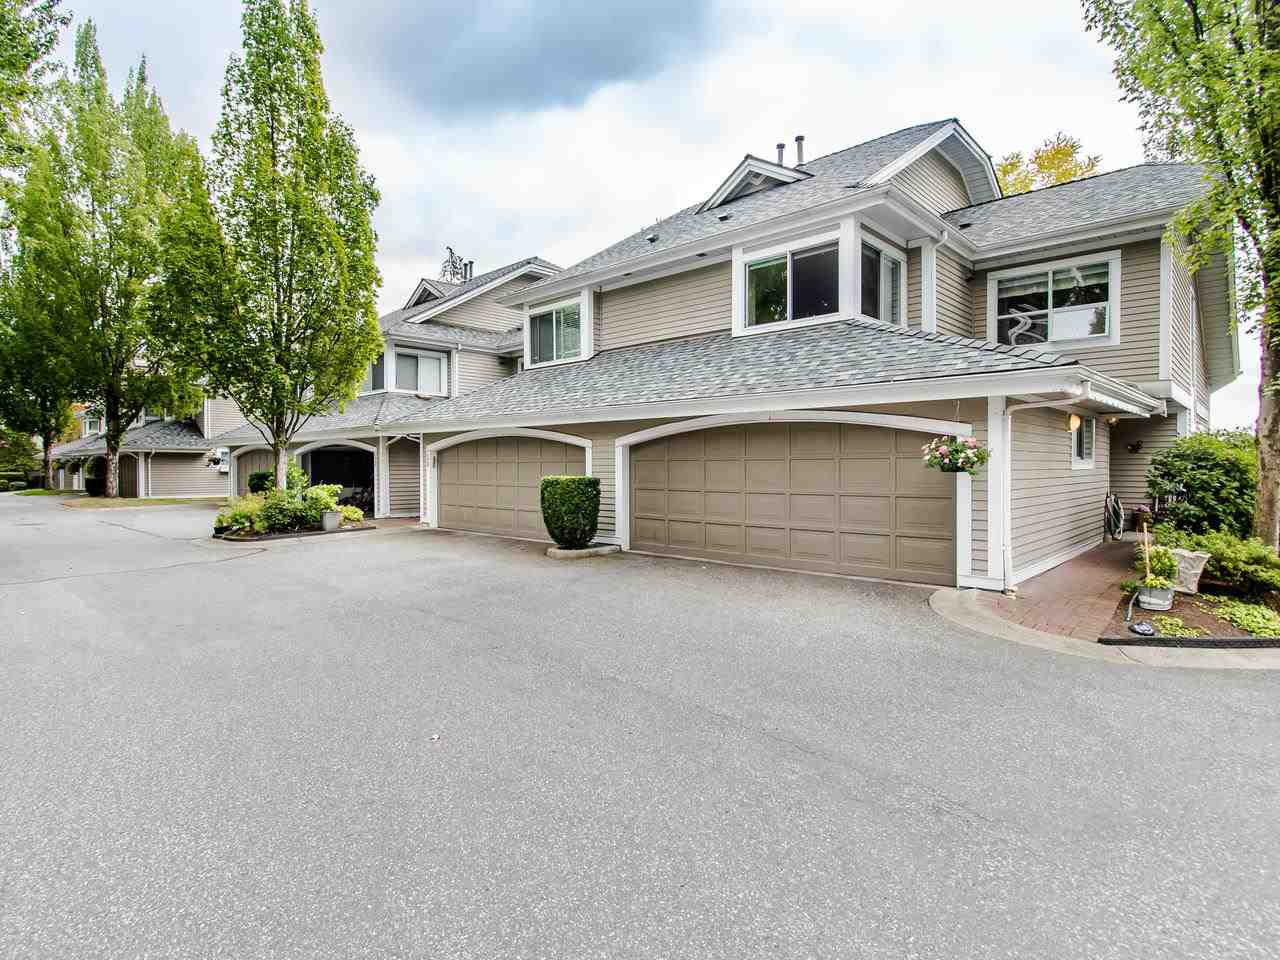 Main Photo: 57 650 ROCHE POINT Drive in North Vancouver: Roche Point Townhouse for sale : MLS®# R2494055